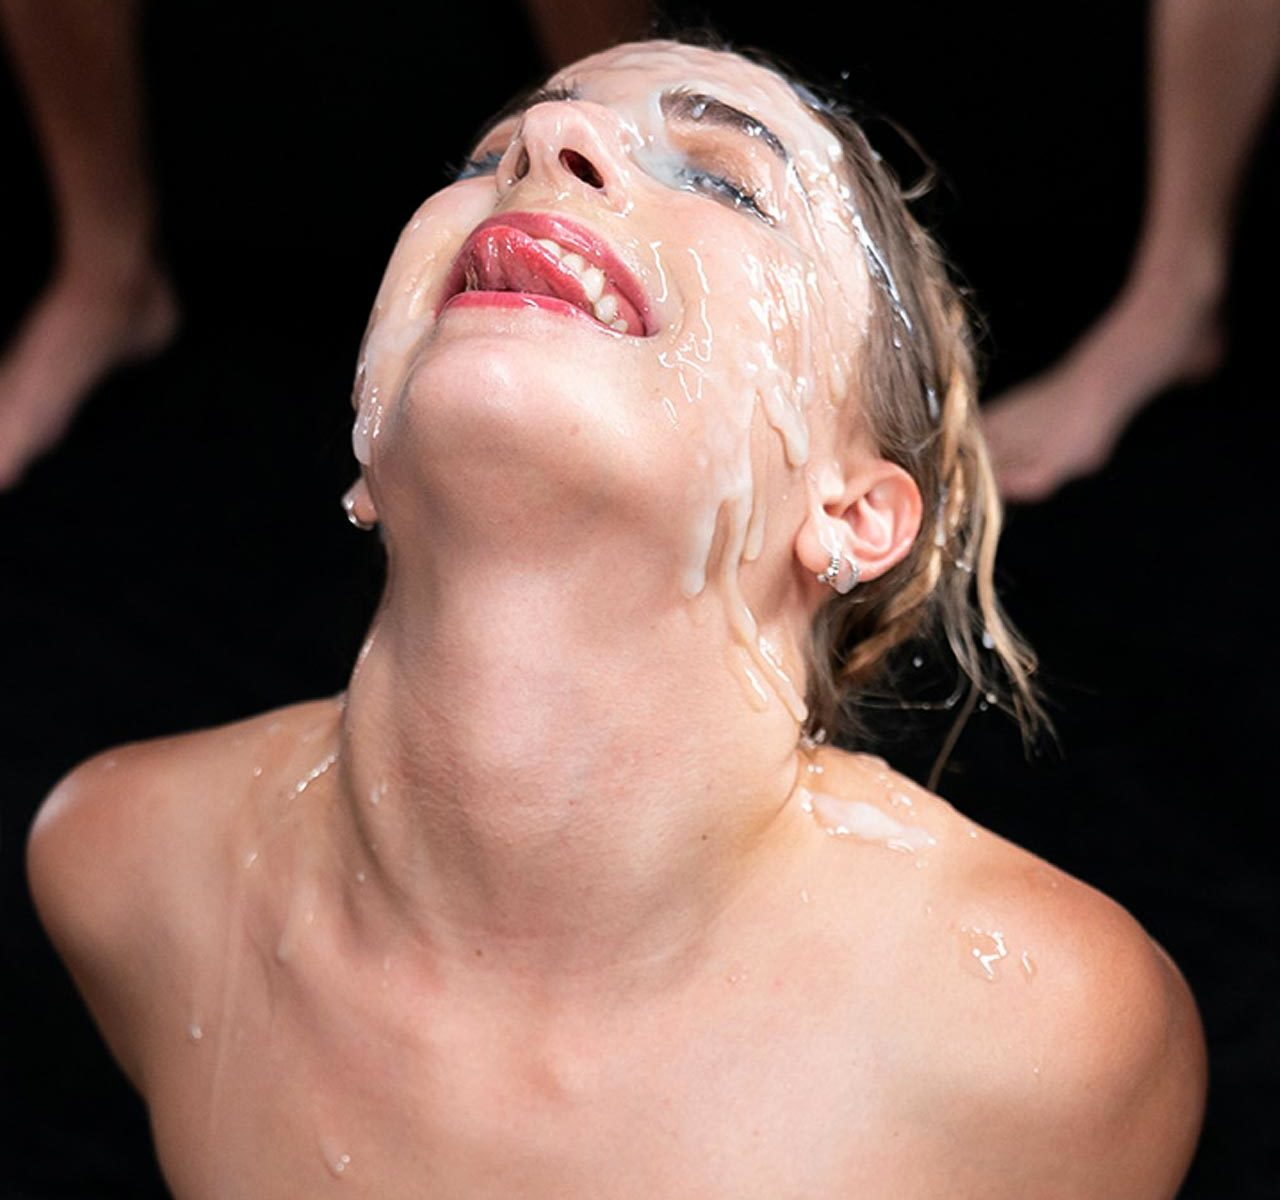 Kristen Scott Facial Bukkake, Cum on Face Fetish. A nude girl is facialized with 31 cumshots. A SpermMania video, uncensored.